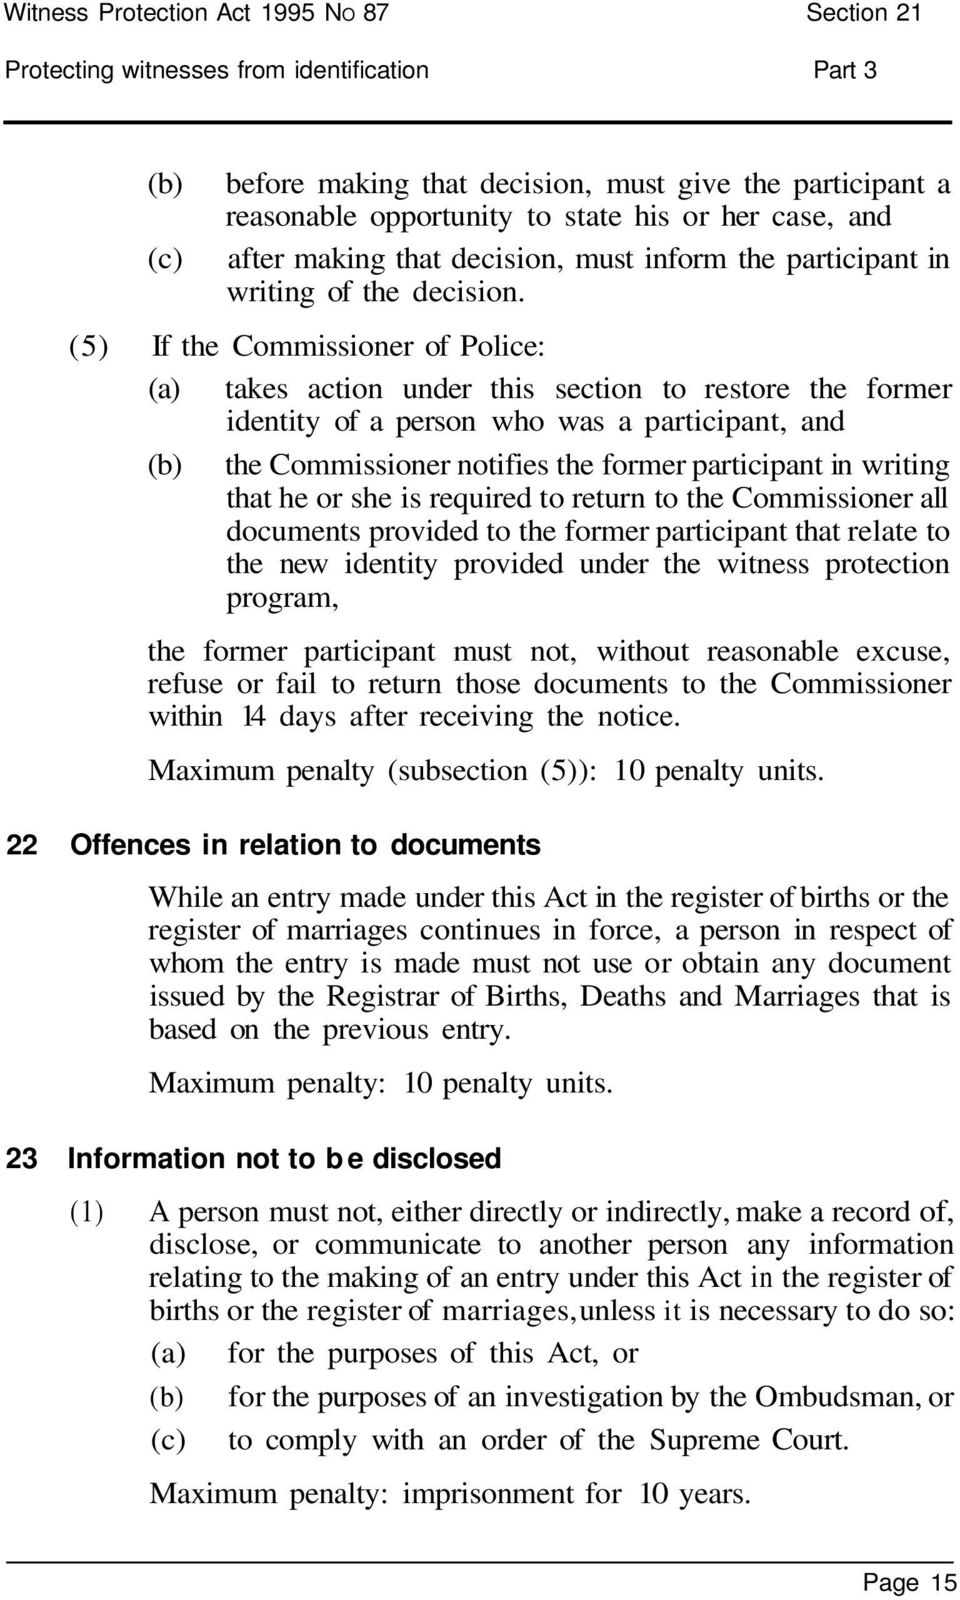 (5) If the Commissioner of Police: takes action under this section to restore the former identity of a person who was a participant, and the Commissioner notifies the former participant in writing